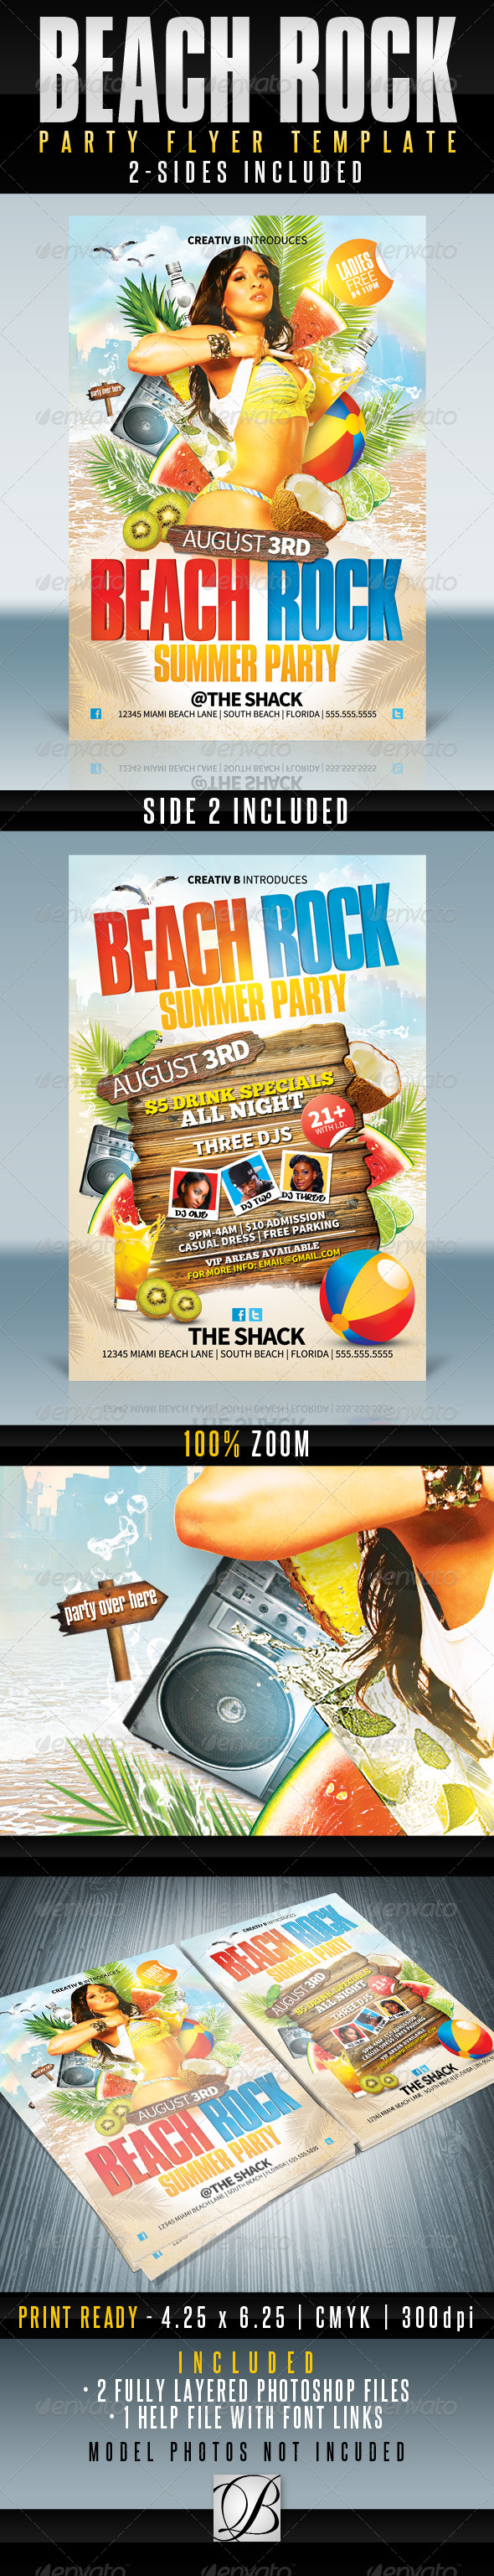 GraphicRiver Beach Rock Party Flyer Templates 4628033